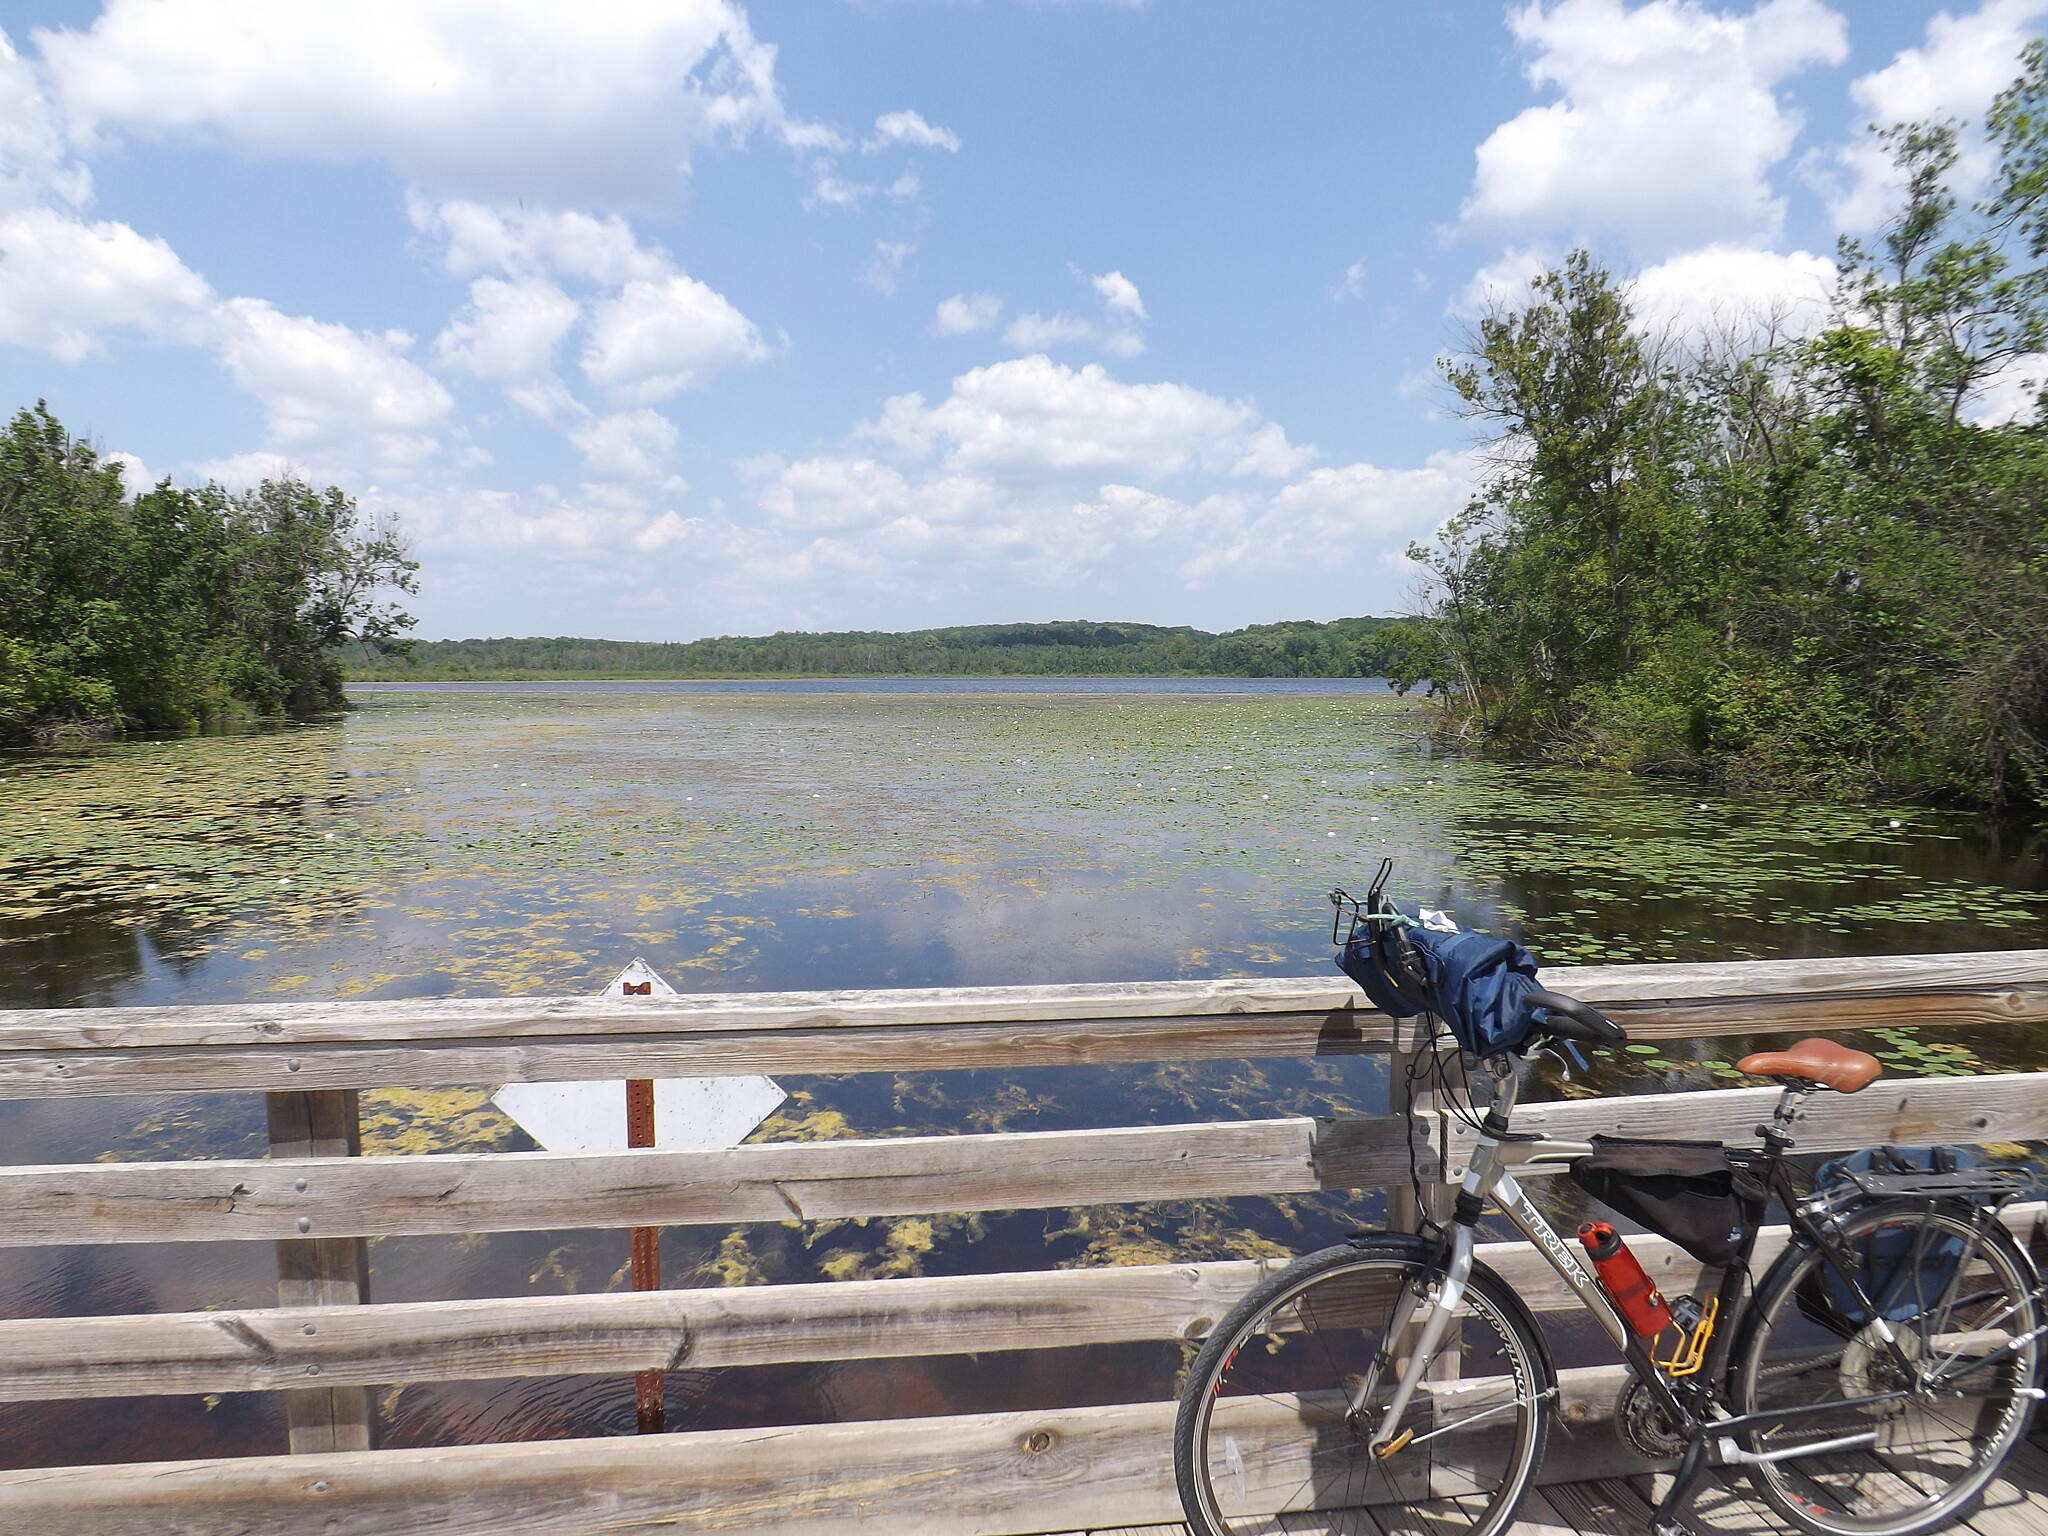 Lake to Lake Bike Trail (WI) Near Mauthe Lake Crossing the headwaters of the Milwaukee River.